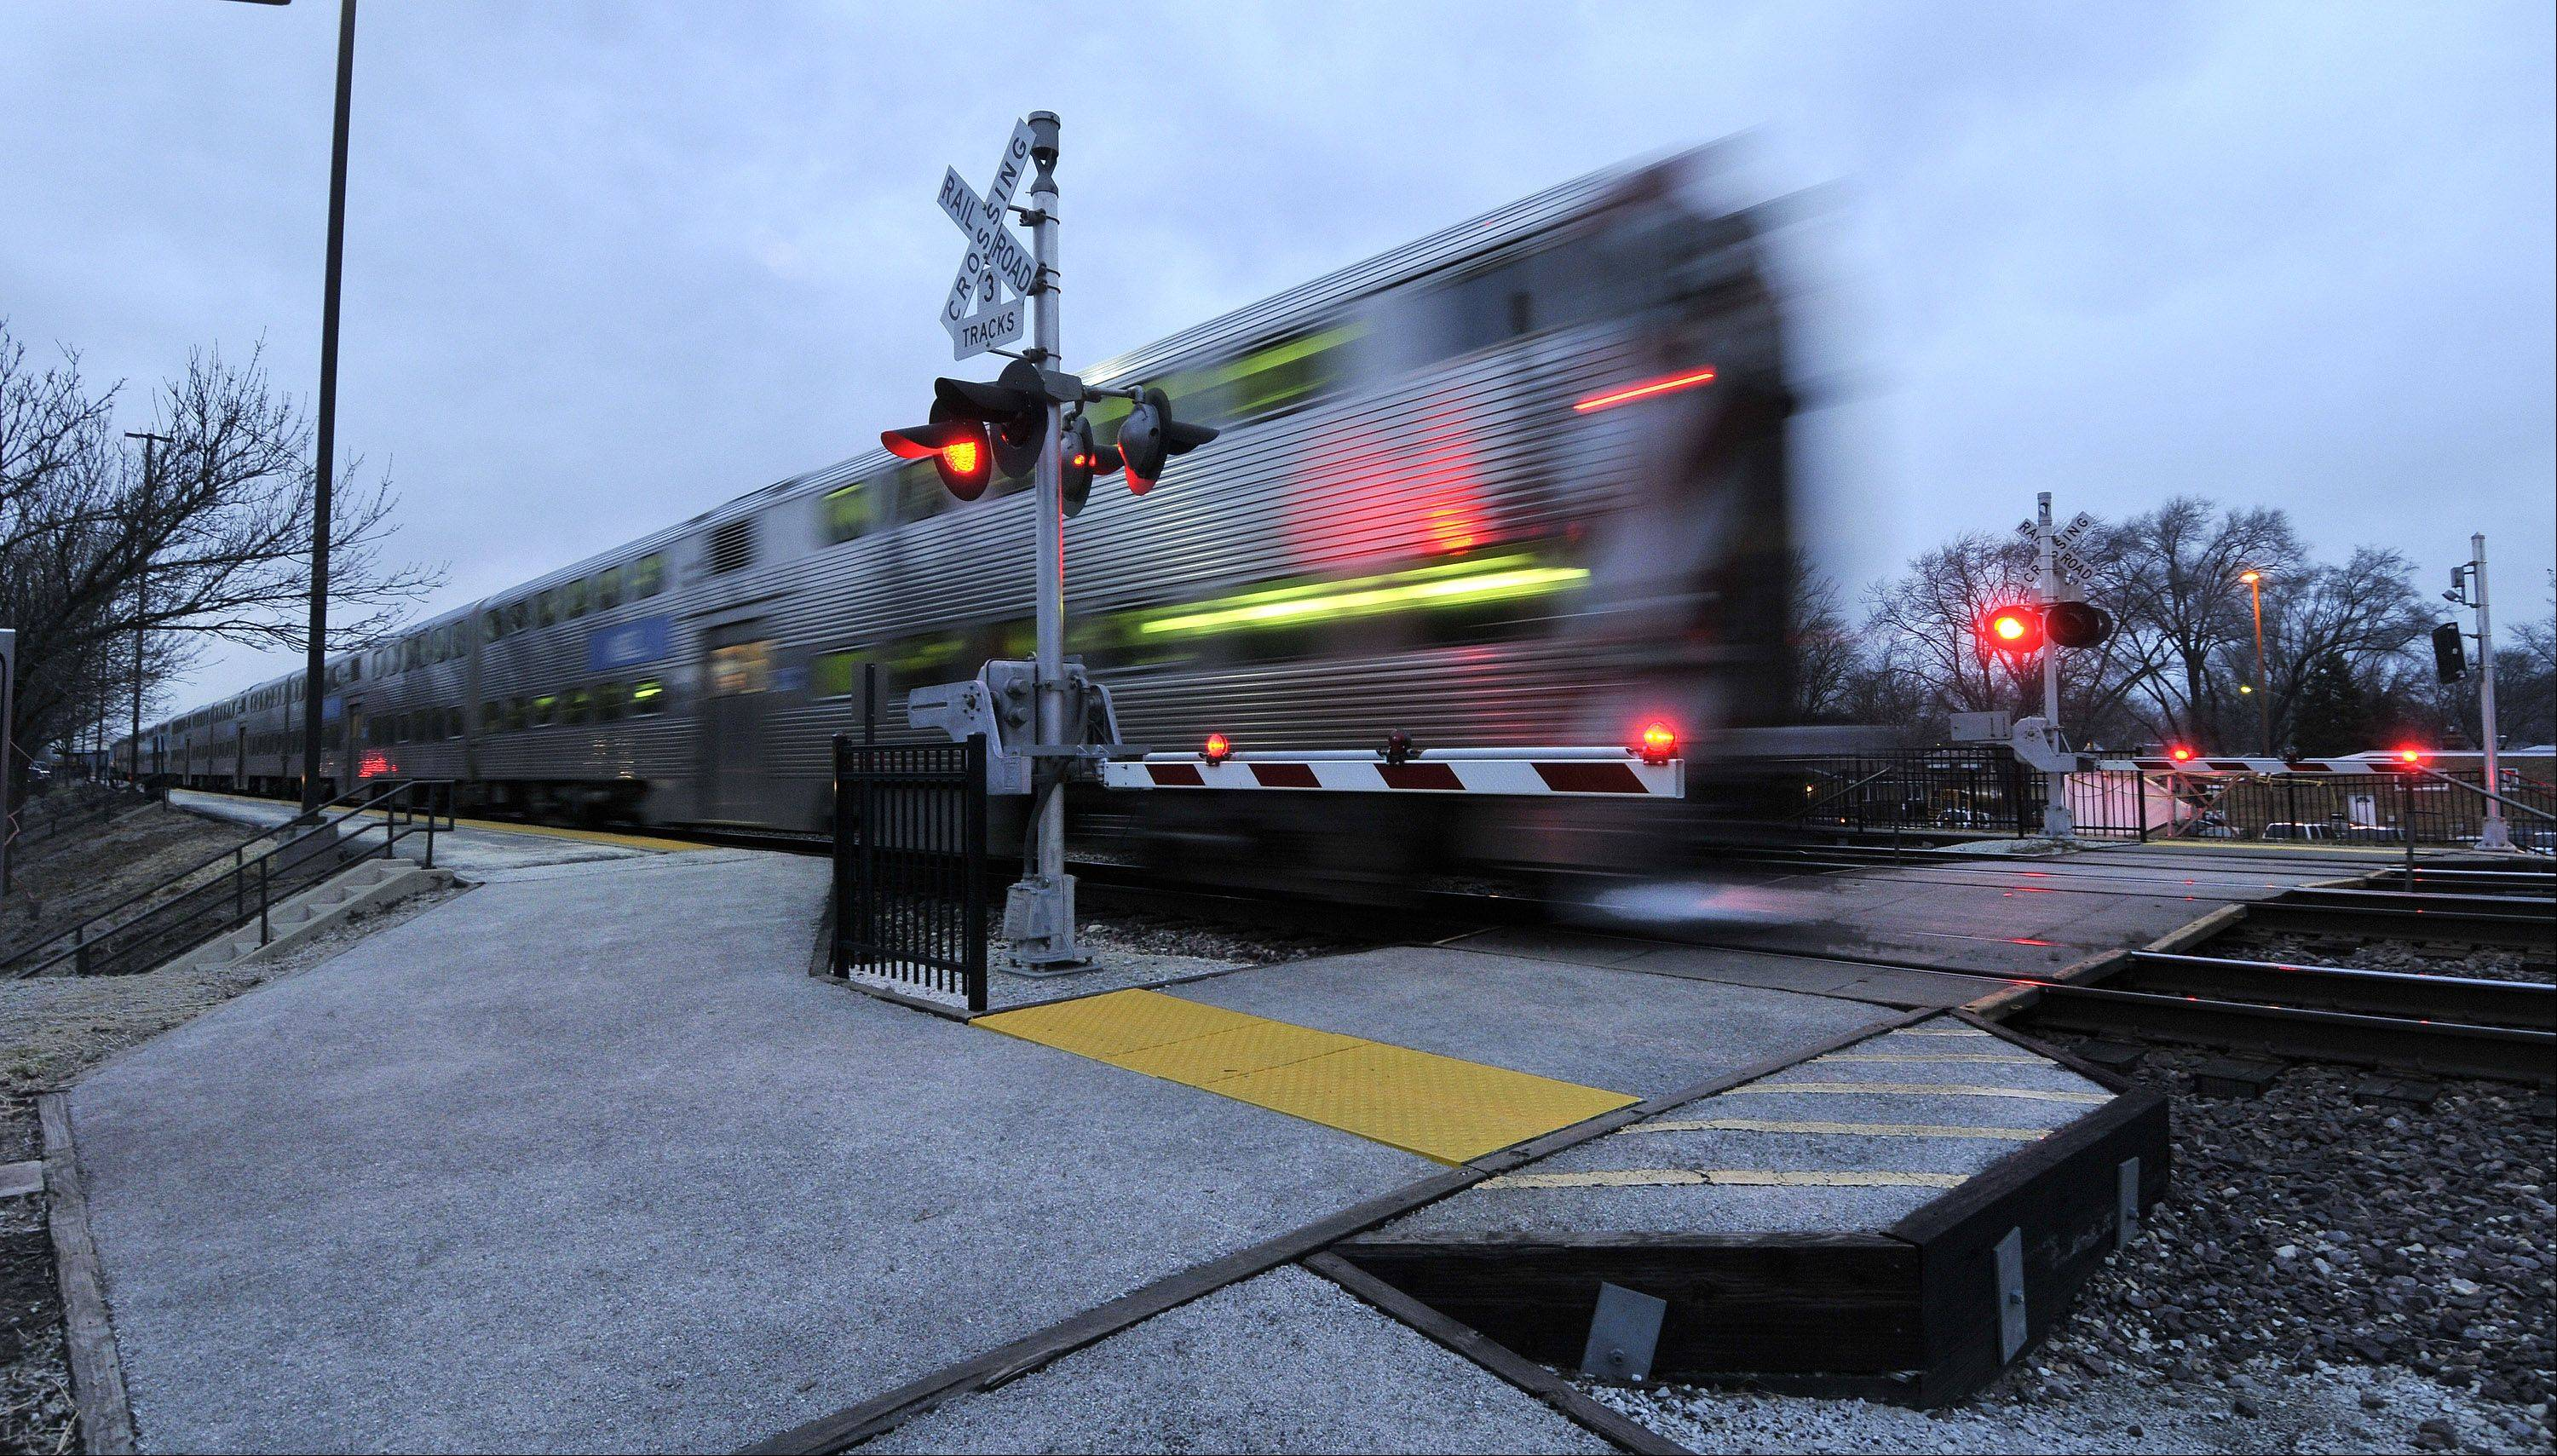 Train safety too costly for some suburbs